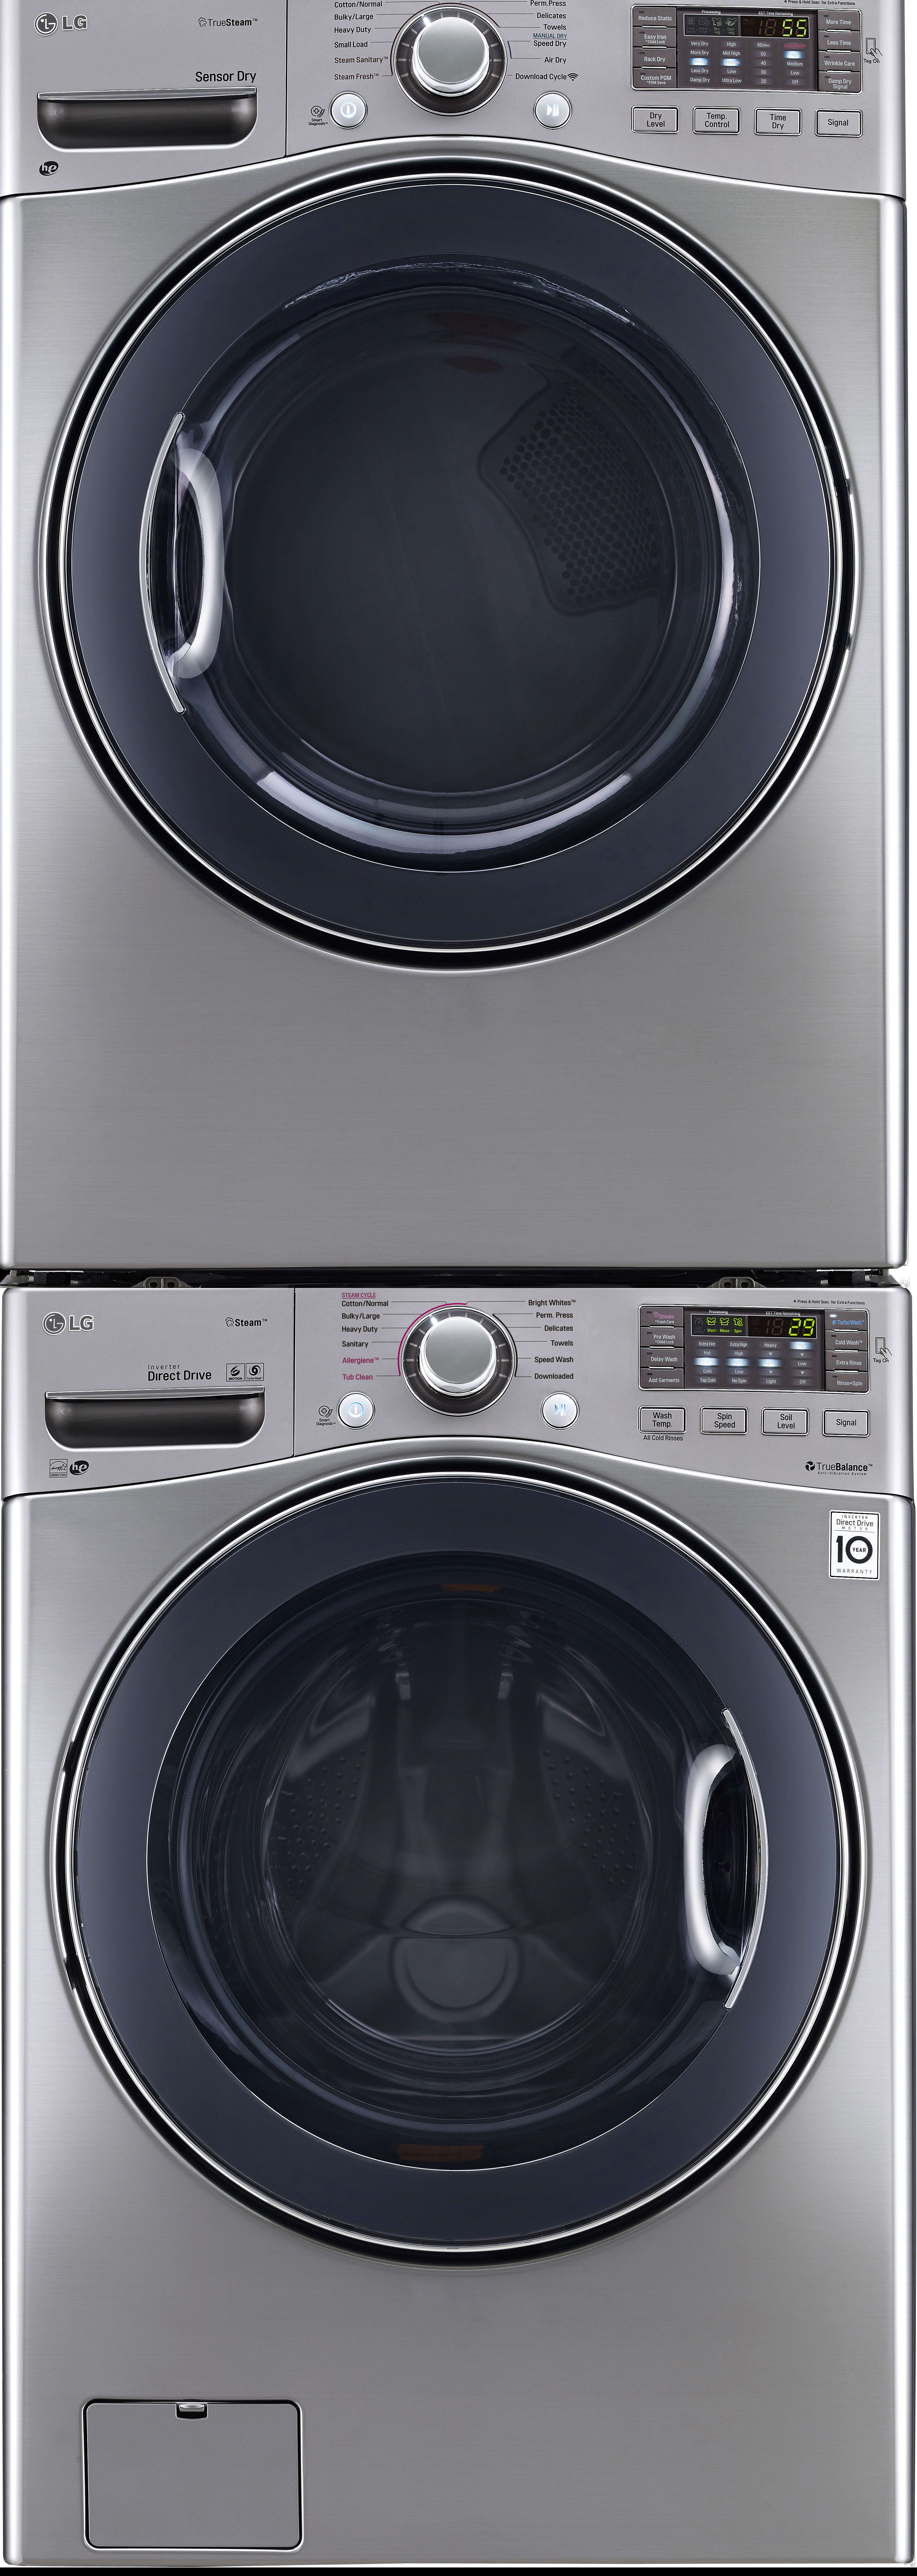 Lg Lgwadregs95 Stacked Washer Amp Dryer Set With Front Load